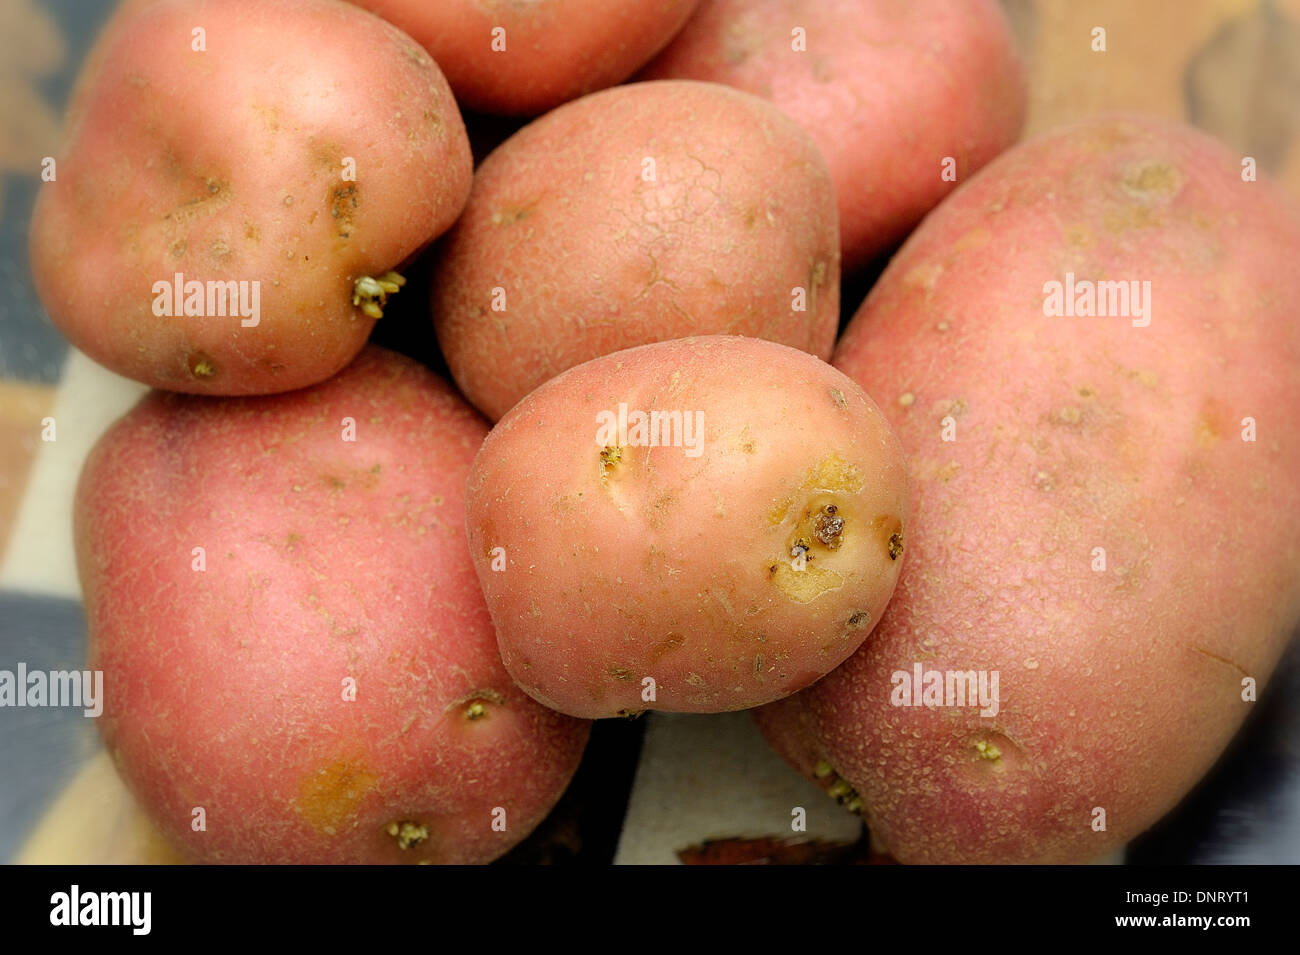 Red potatoes - Stock Image